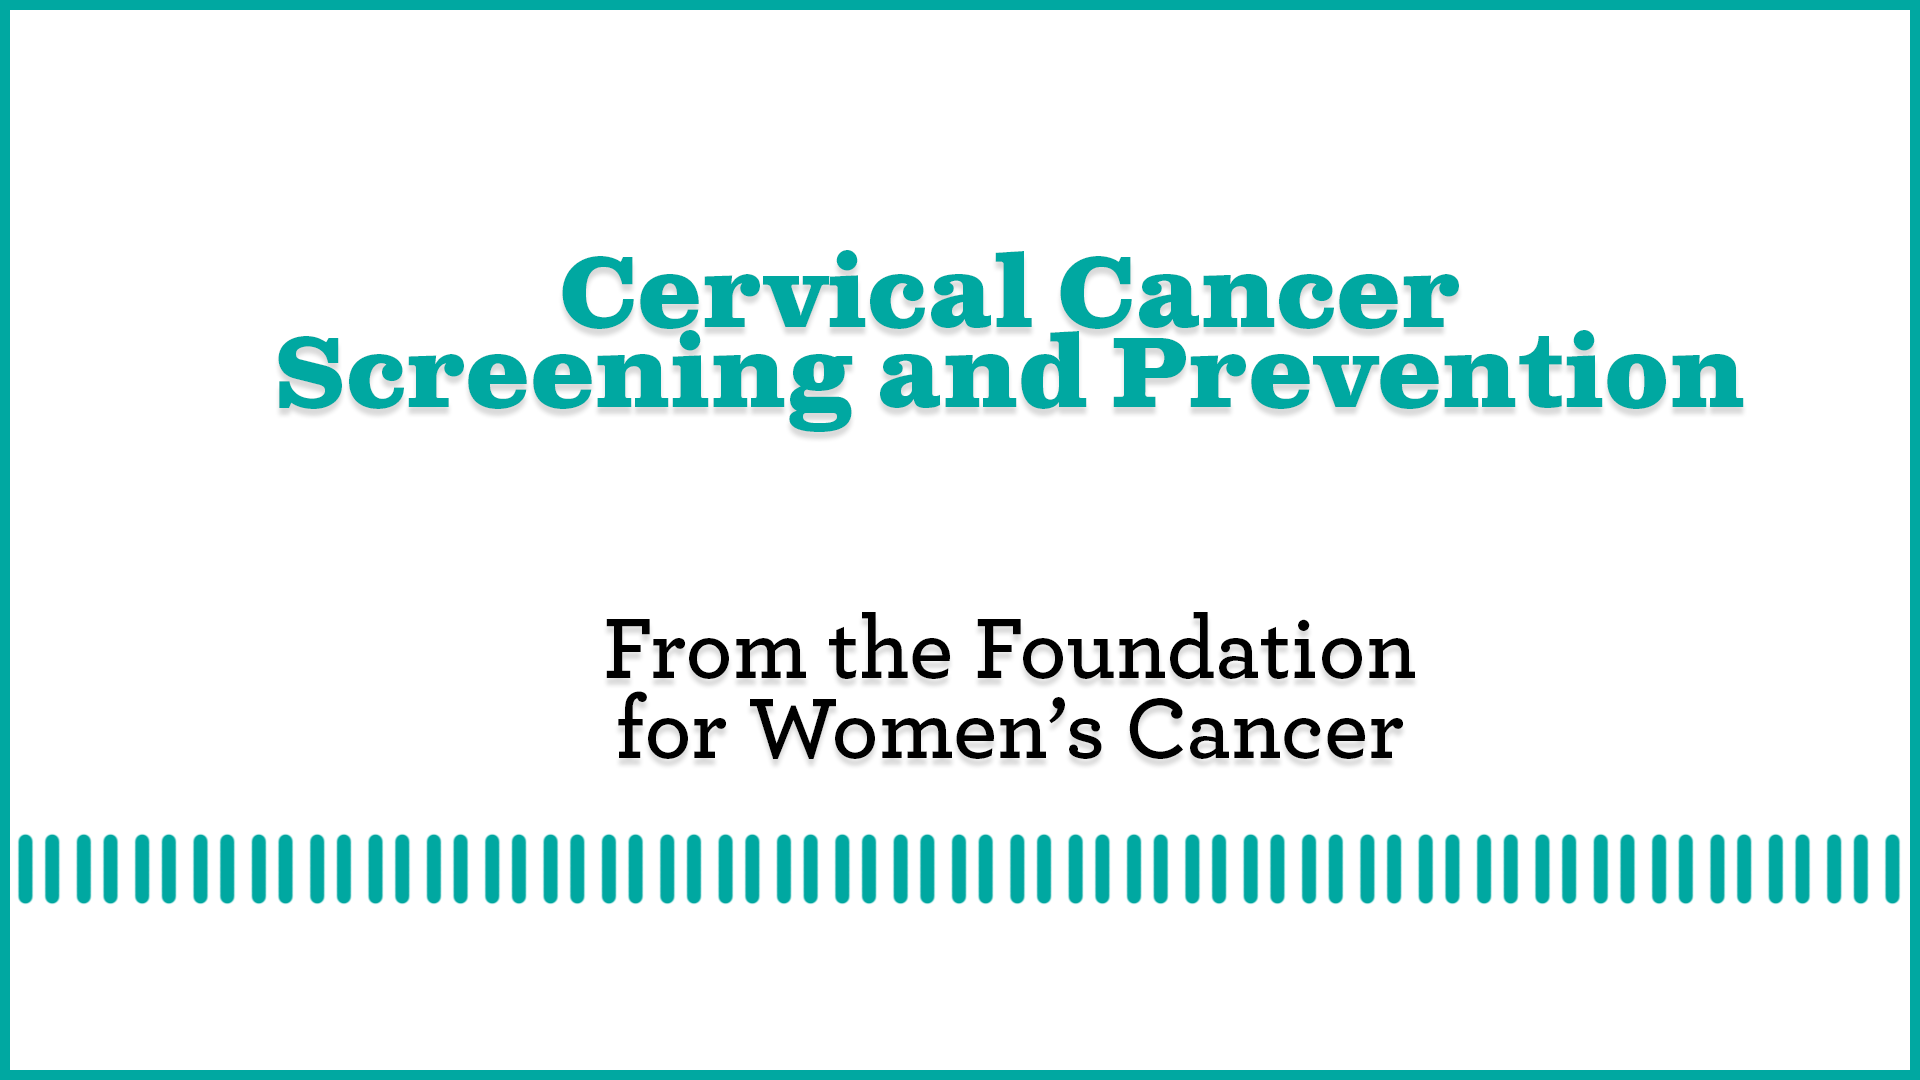 Cervical Cancer Screening and Prevention Update